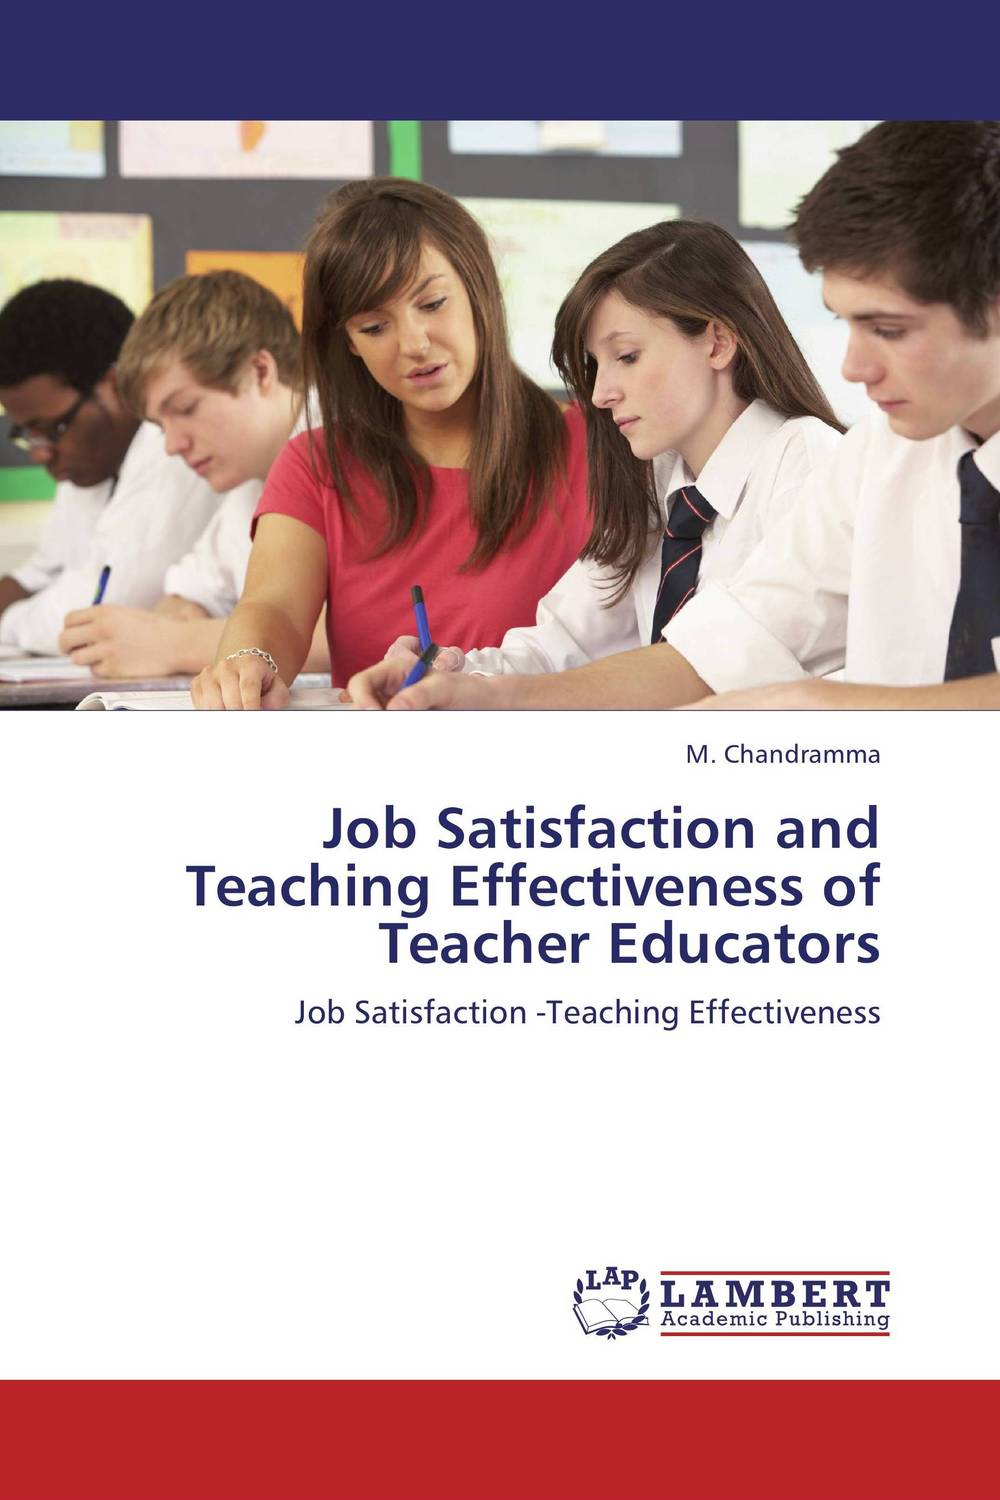 Job Satisfaction and Teaching Effectiveness of Teacher Educators impact of job satisfaction on turnover intentions